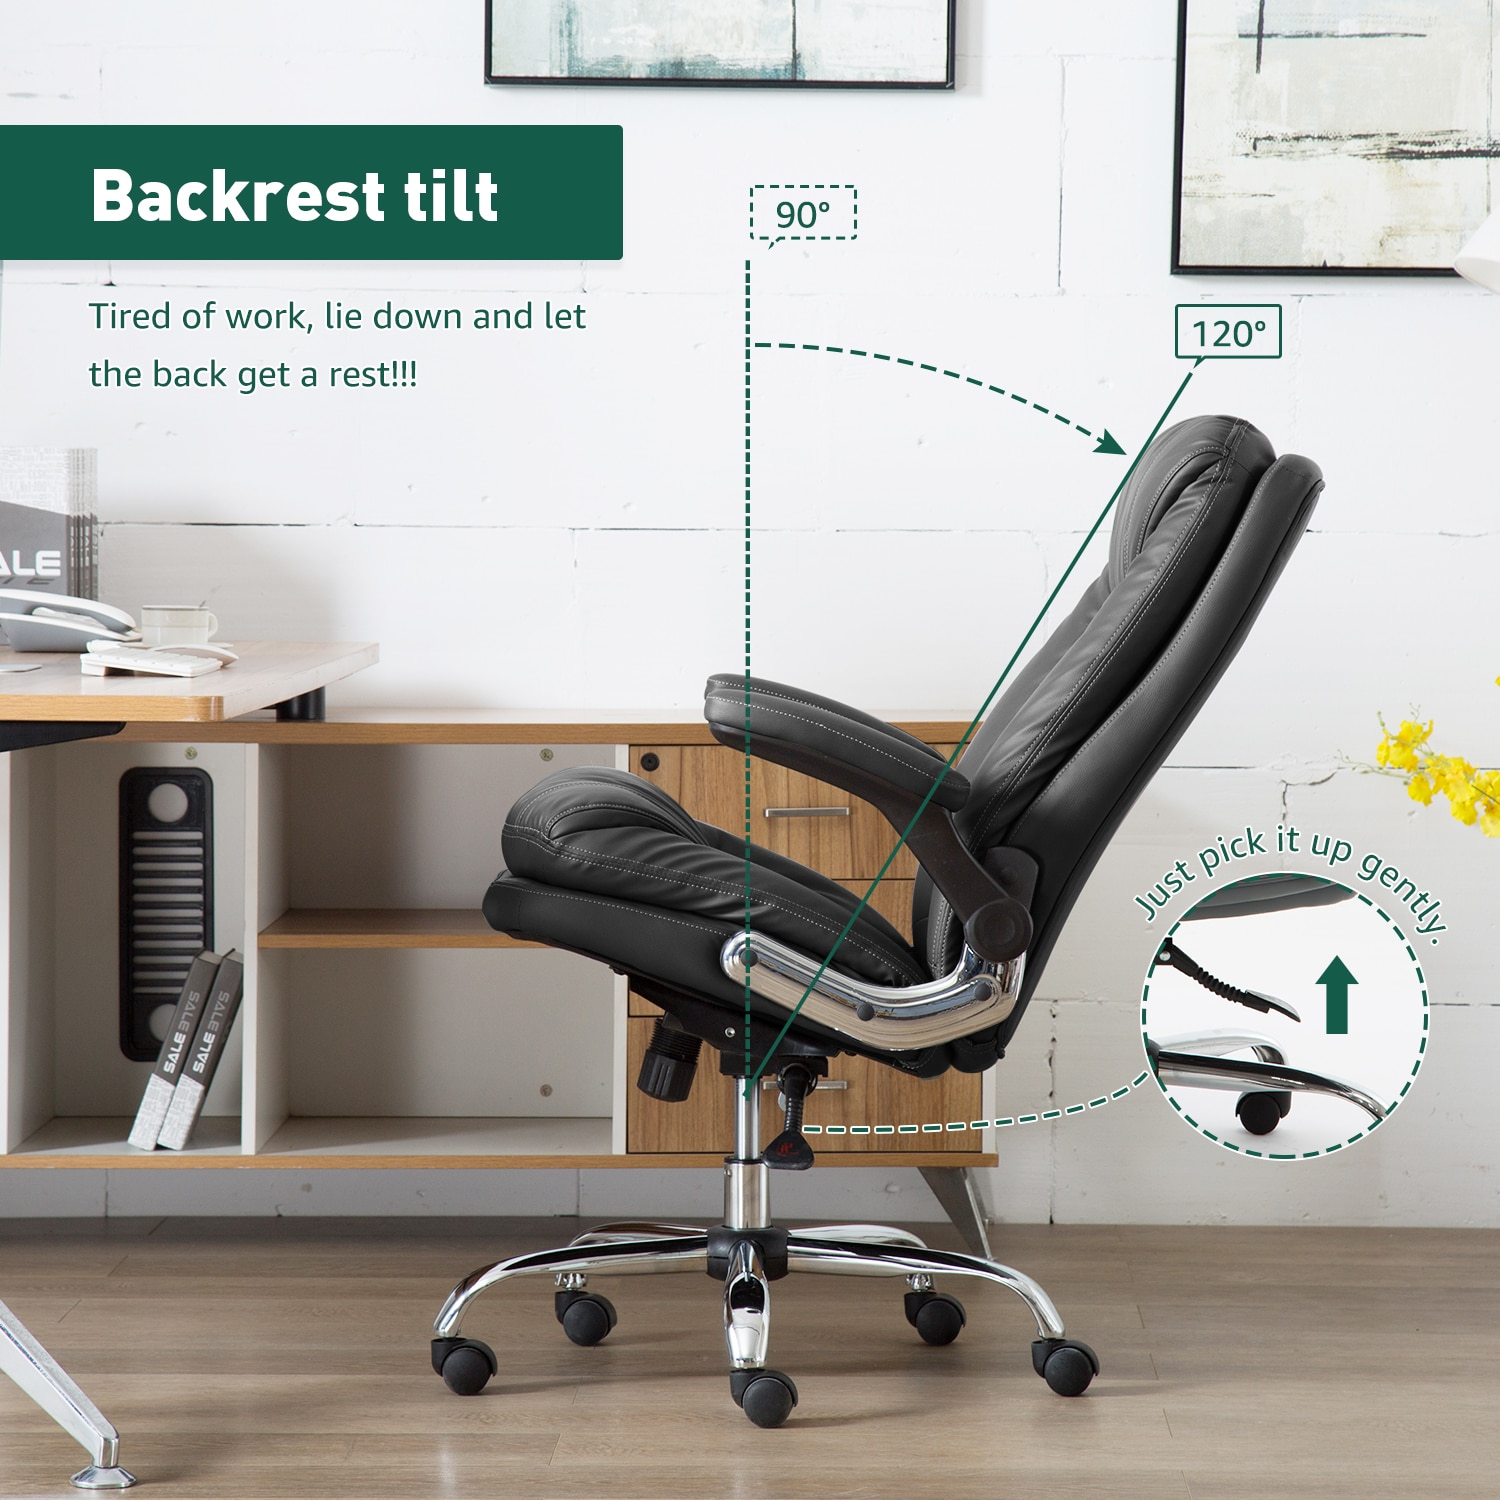 H2f13f59787a145a8bbaeecd2c059df70M - Yamasoro Ergonomic Office chair Faux PU Leather Chair Executive Computer Desk Chairs Managerial Executive Chairs